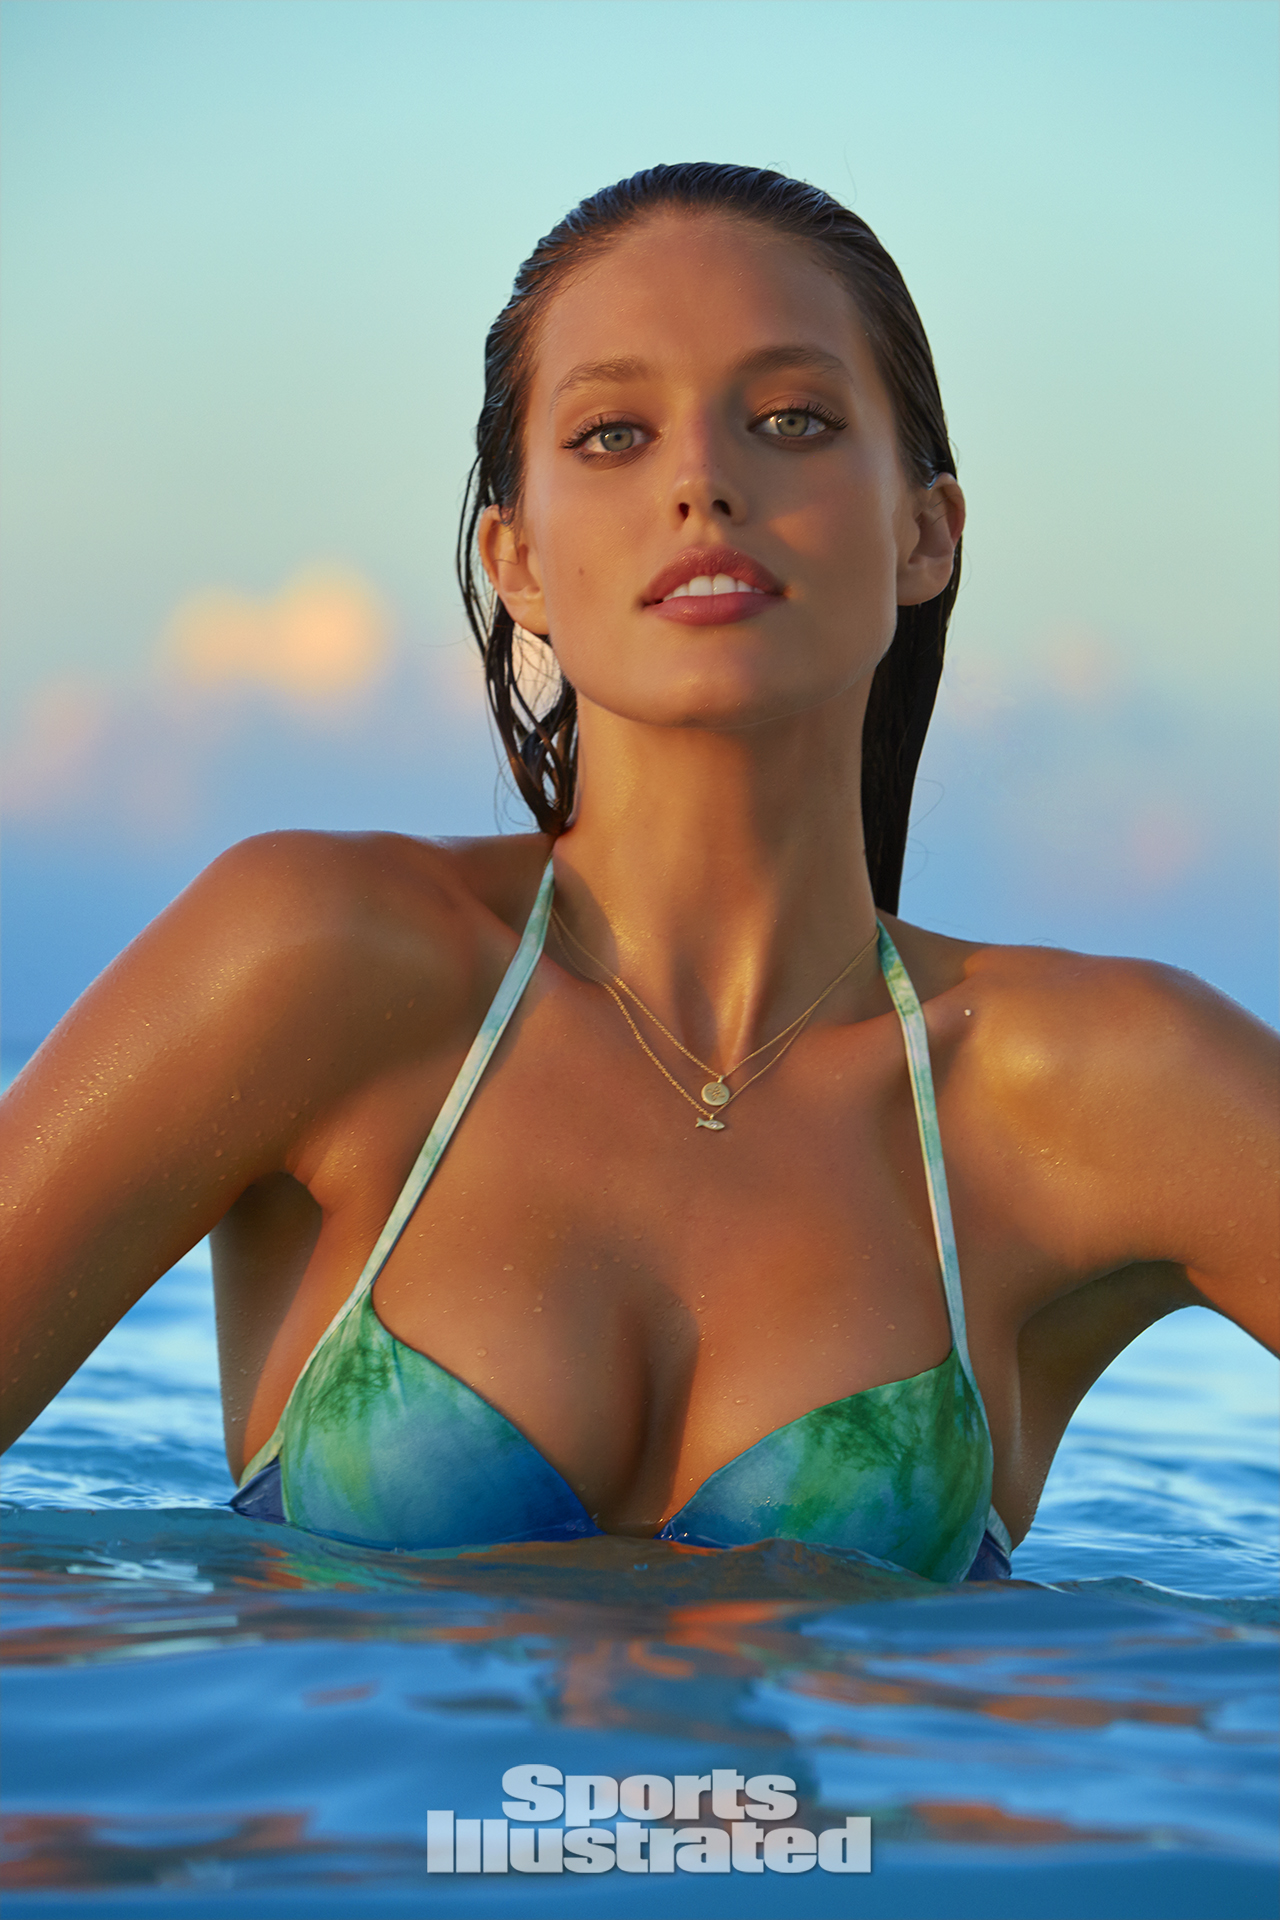 Emily DiDonato was photographed by James Macari in Turks & Caicos. Swimsuit by Dolcessa Swimwear.